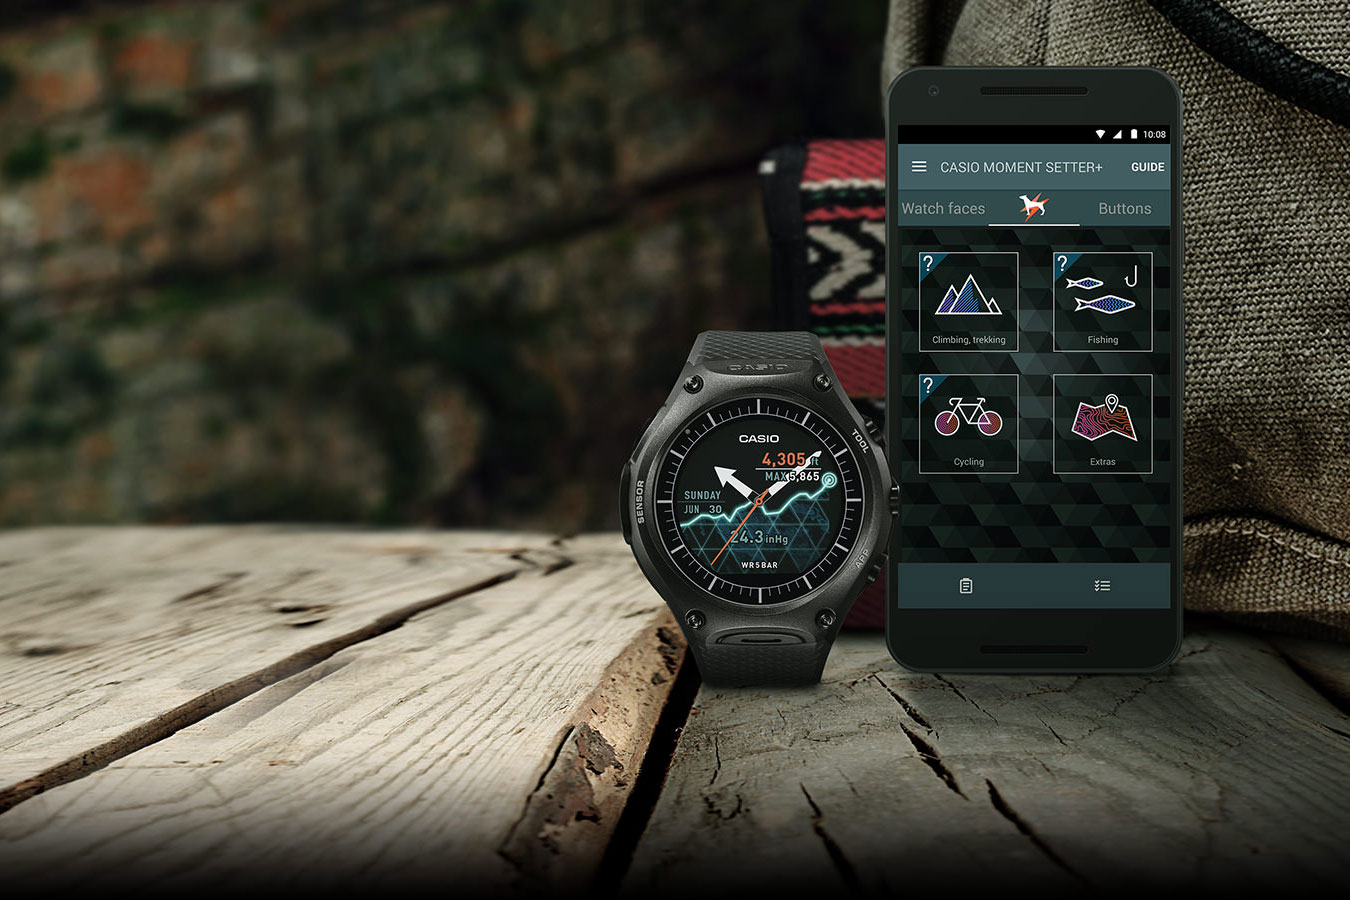 Casio's Android Wear rugged watch is now available at $500